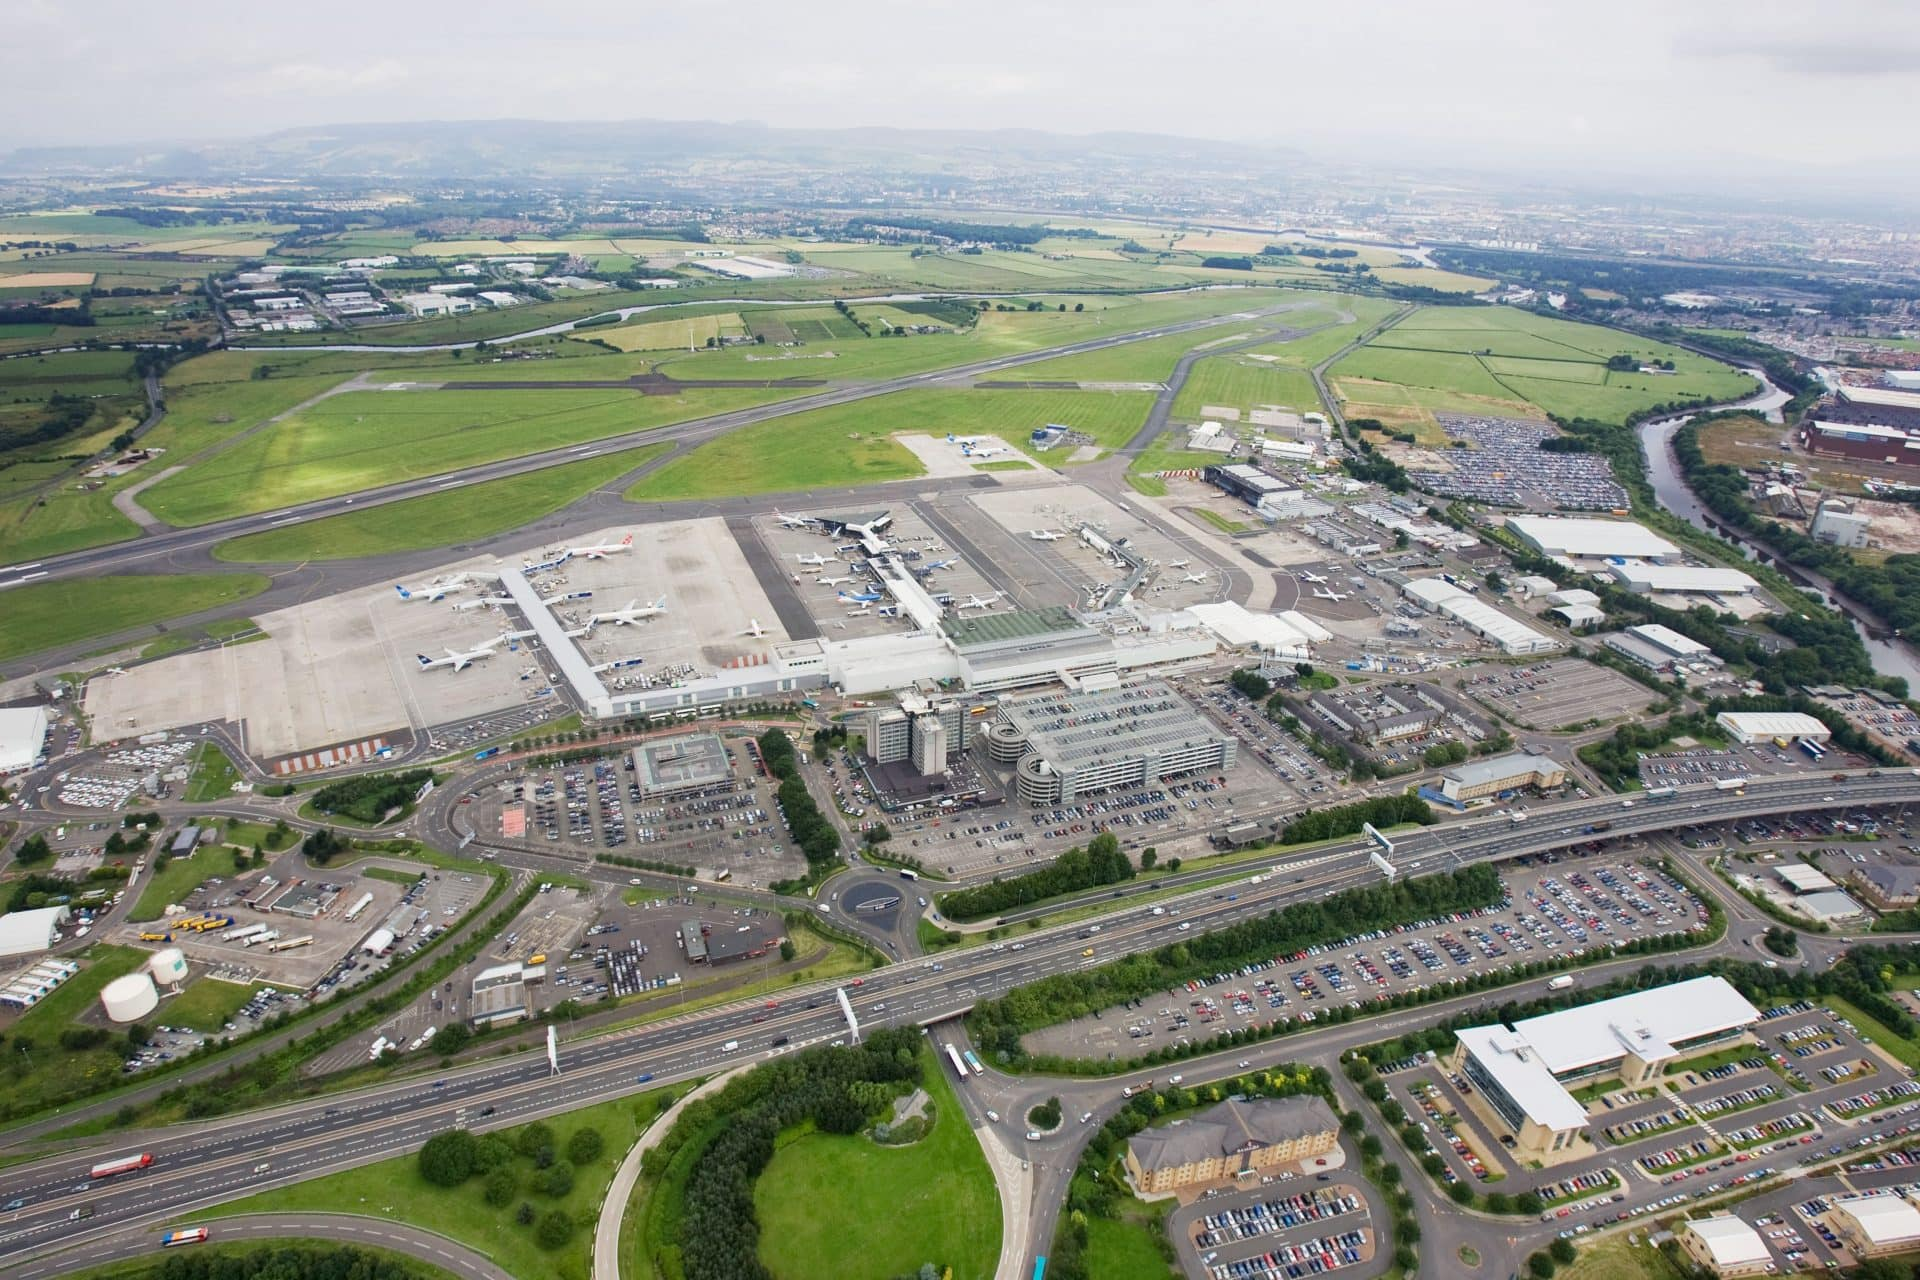 Glasgow Airport Safety Award Healthy Safe Covid19 Flights British Safety Council